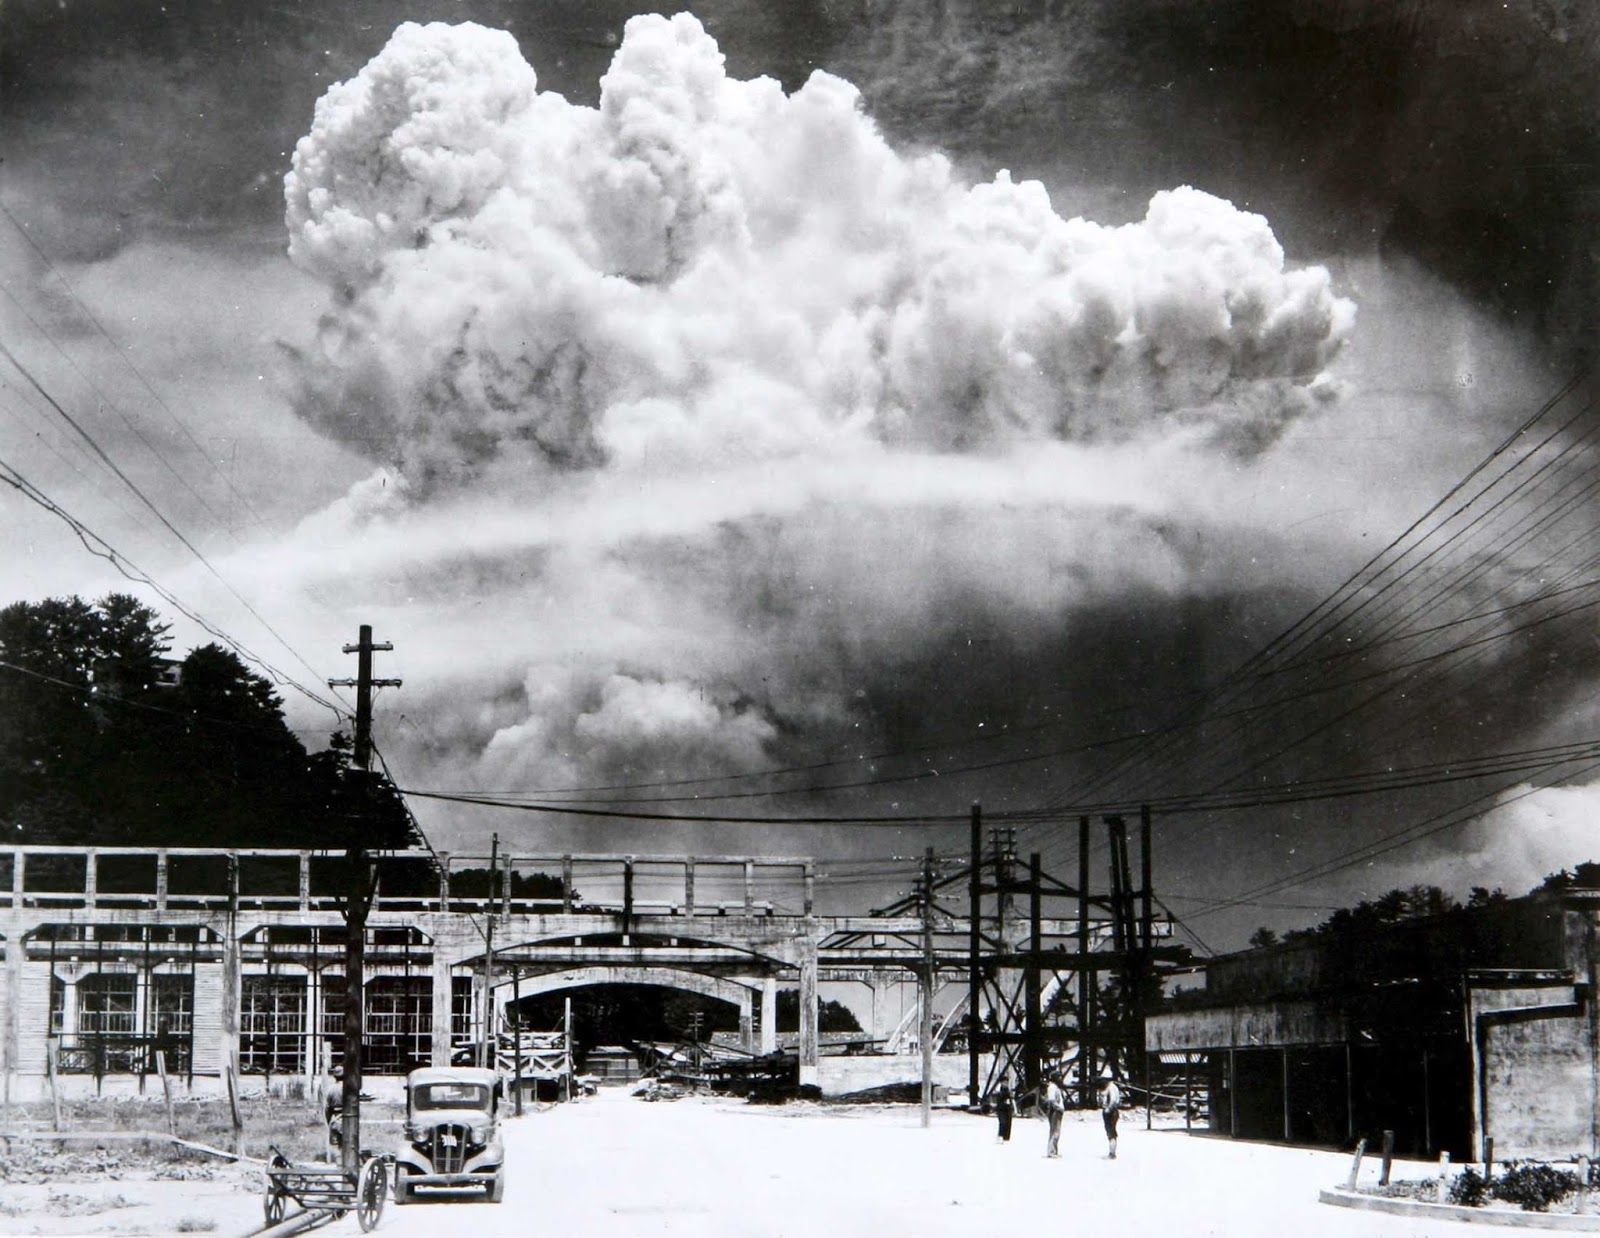 The rising mushroom cloud over Nagasaki, a few minutes after the nuclear bomb was detonated, August 9, 1945. Picture taken from Koyagi-jima, 5 miles from the center of Nagasaki.